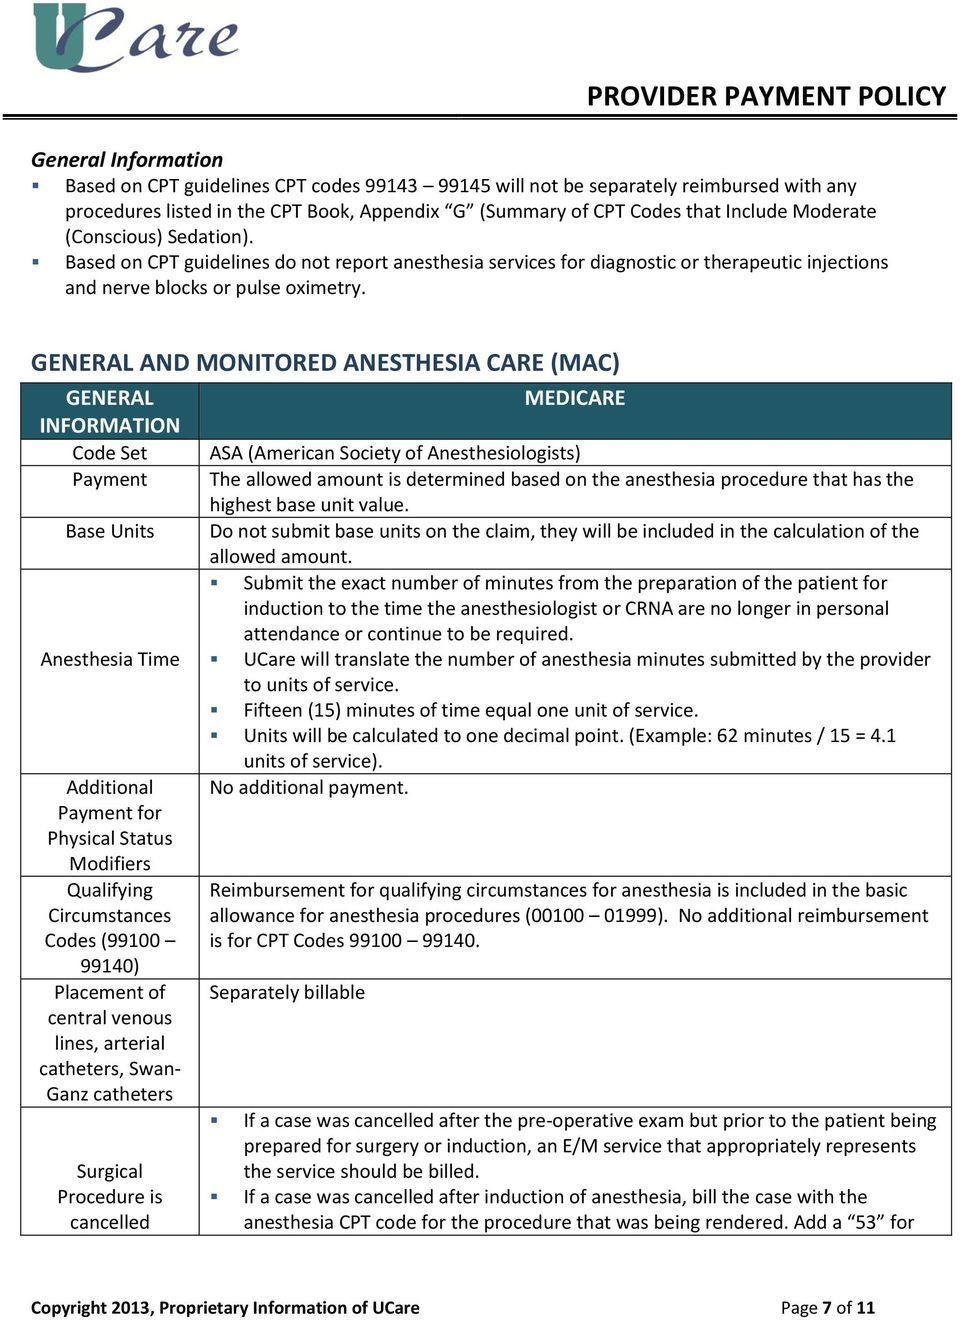 GENERAL AND MONITORED ANESTHESIA CARE (MAC) GENERAL INFORMATION Code Set Payment Base Units Anesthesia Time Additional Payment for Physical Status Modifiers Qualifying Circumstances Codes (99100